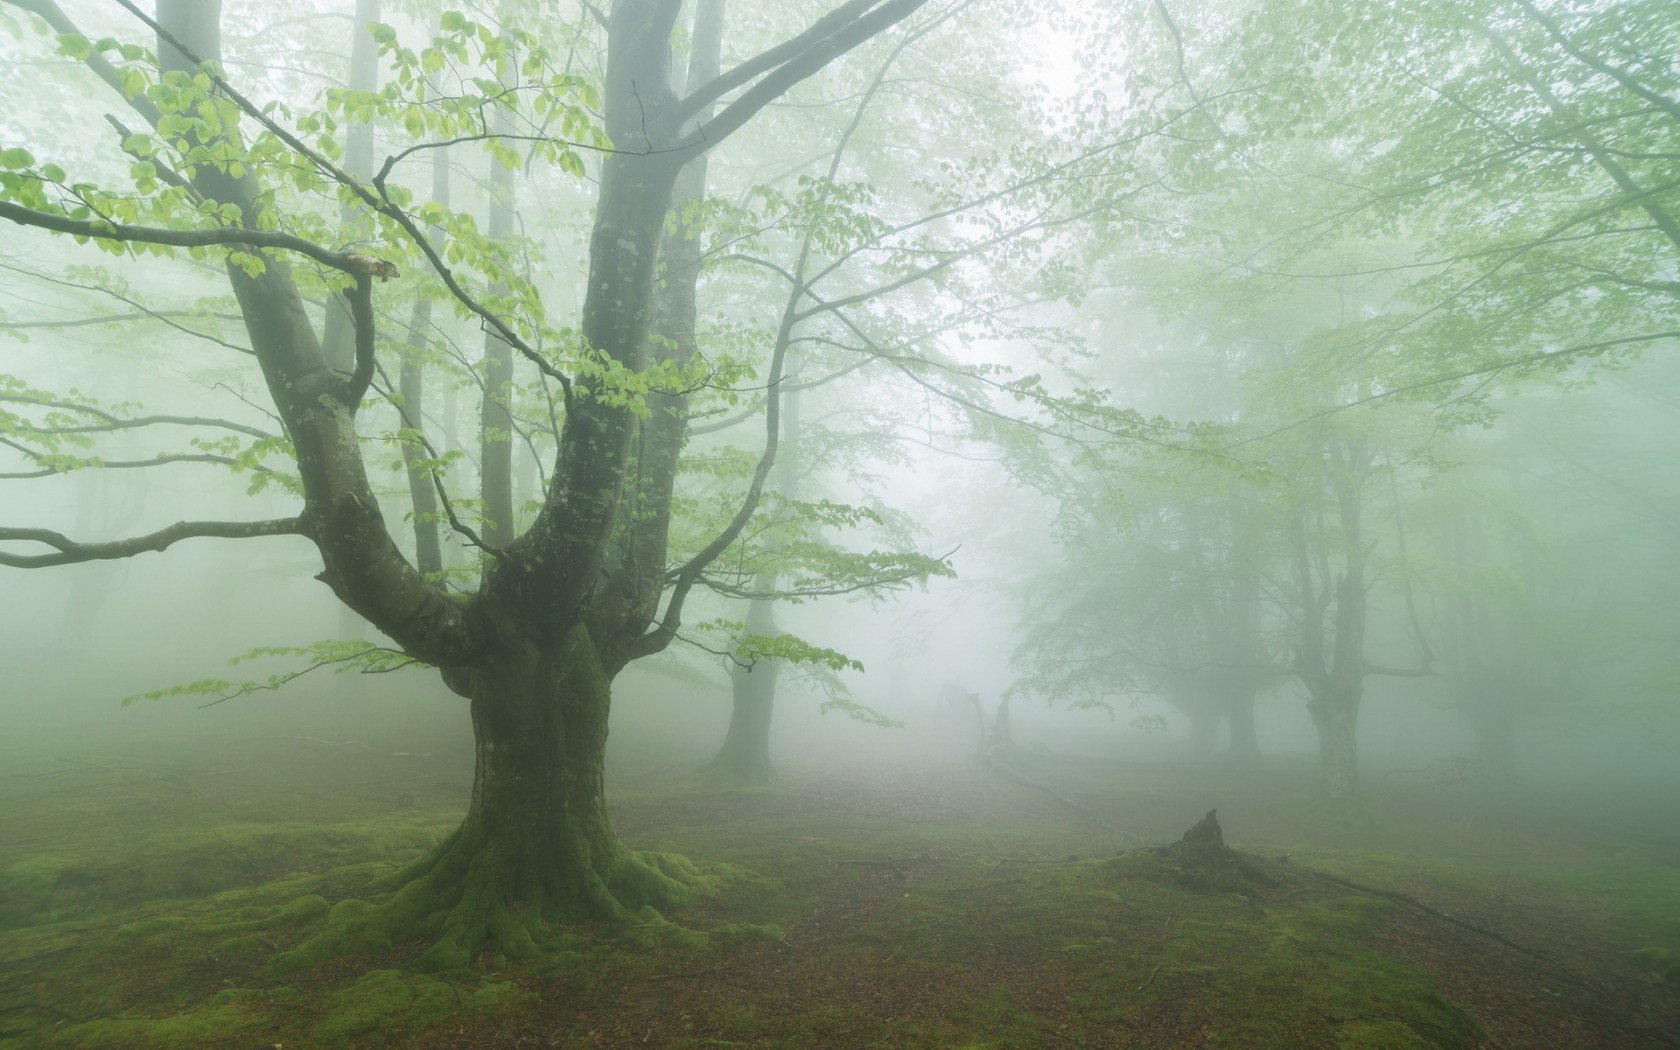 Desktop Wallpaper 225 – Nebbia